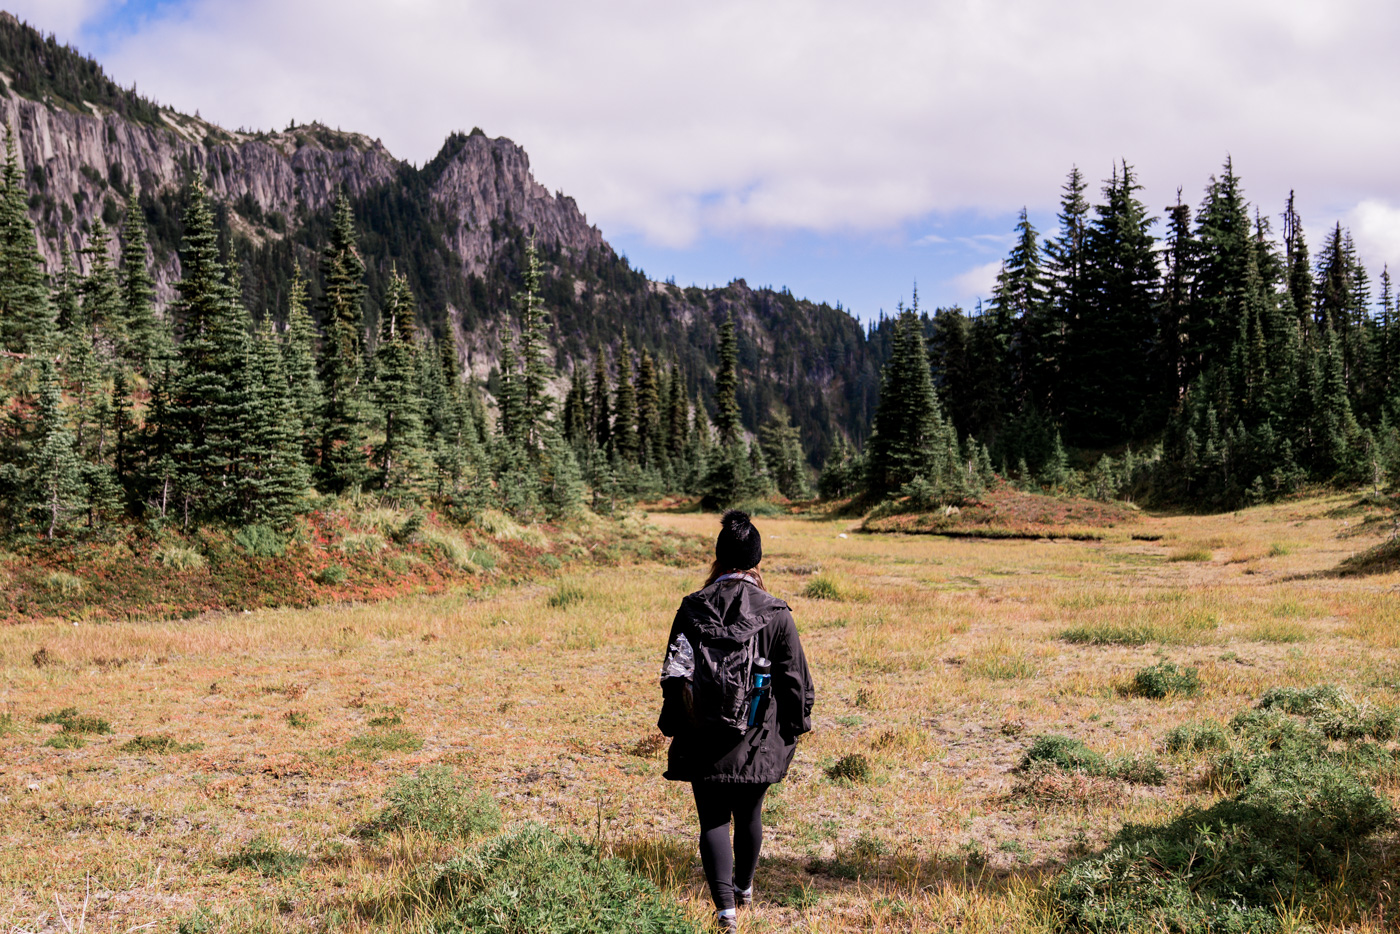 hiking in mount rainier national park, near seattle